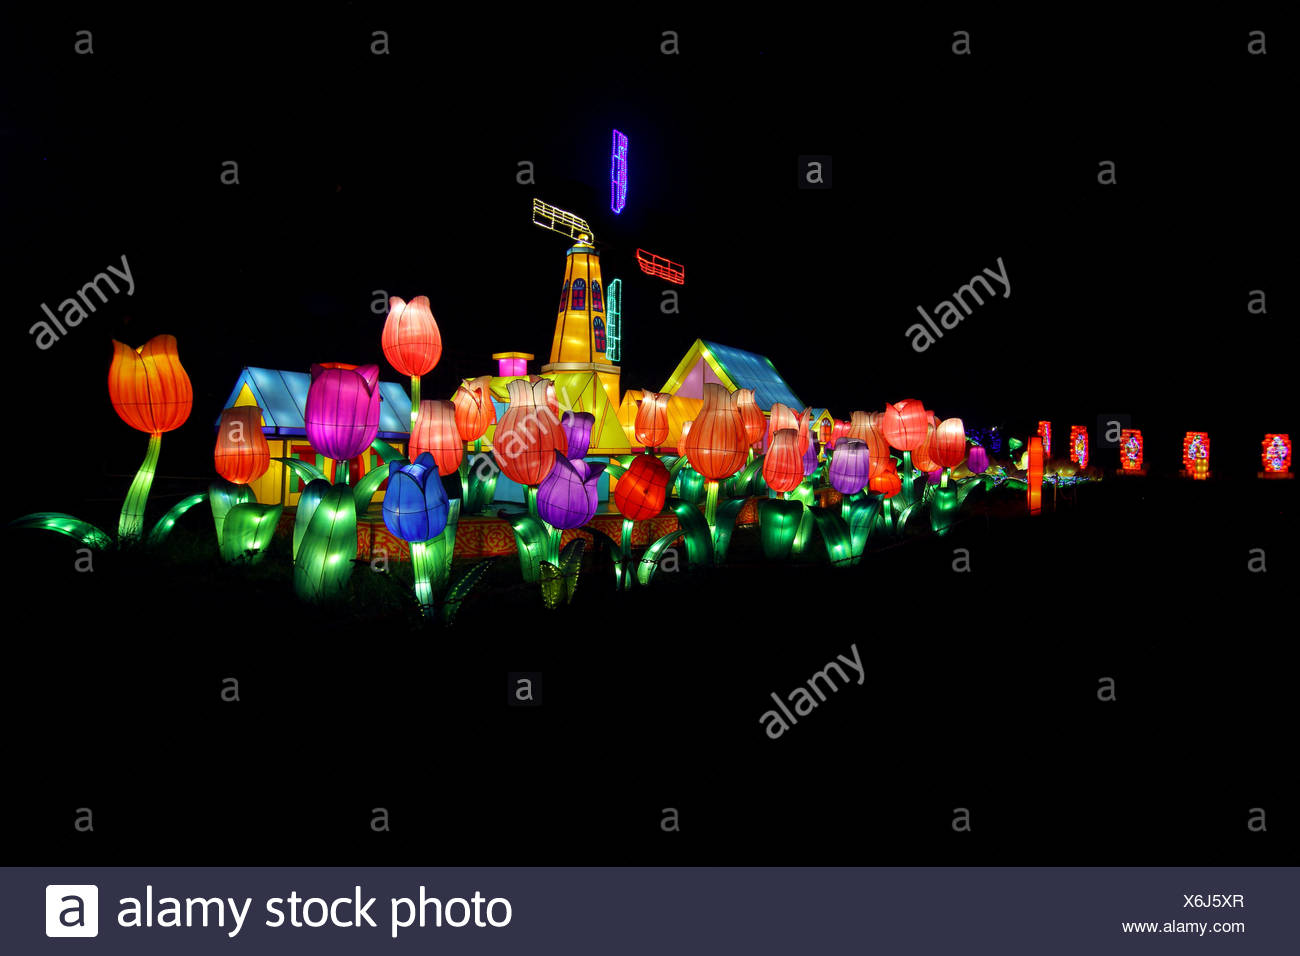 Dutch Windmill And Tulip Lanterns At Chinese Lantern Festival Stock